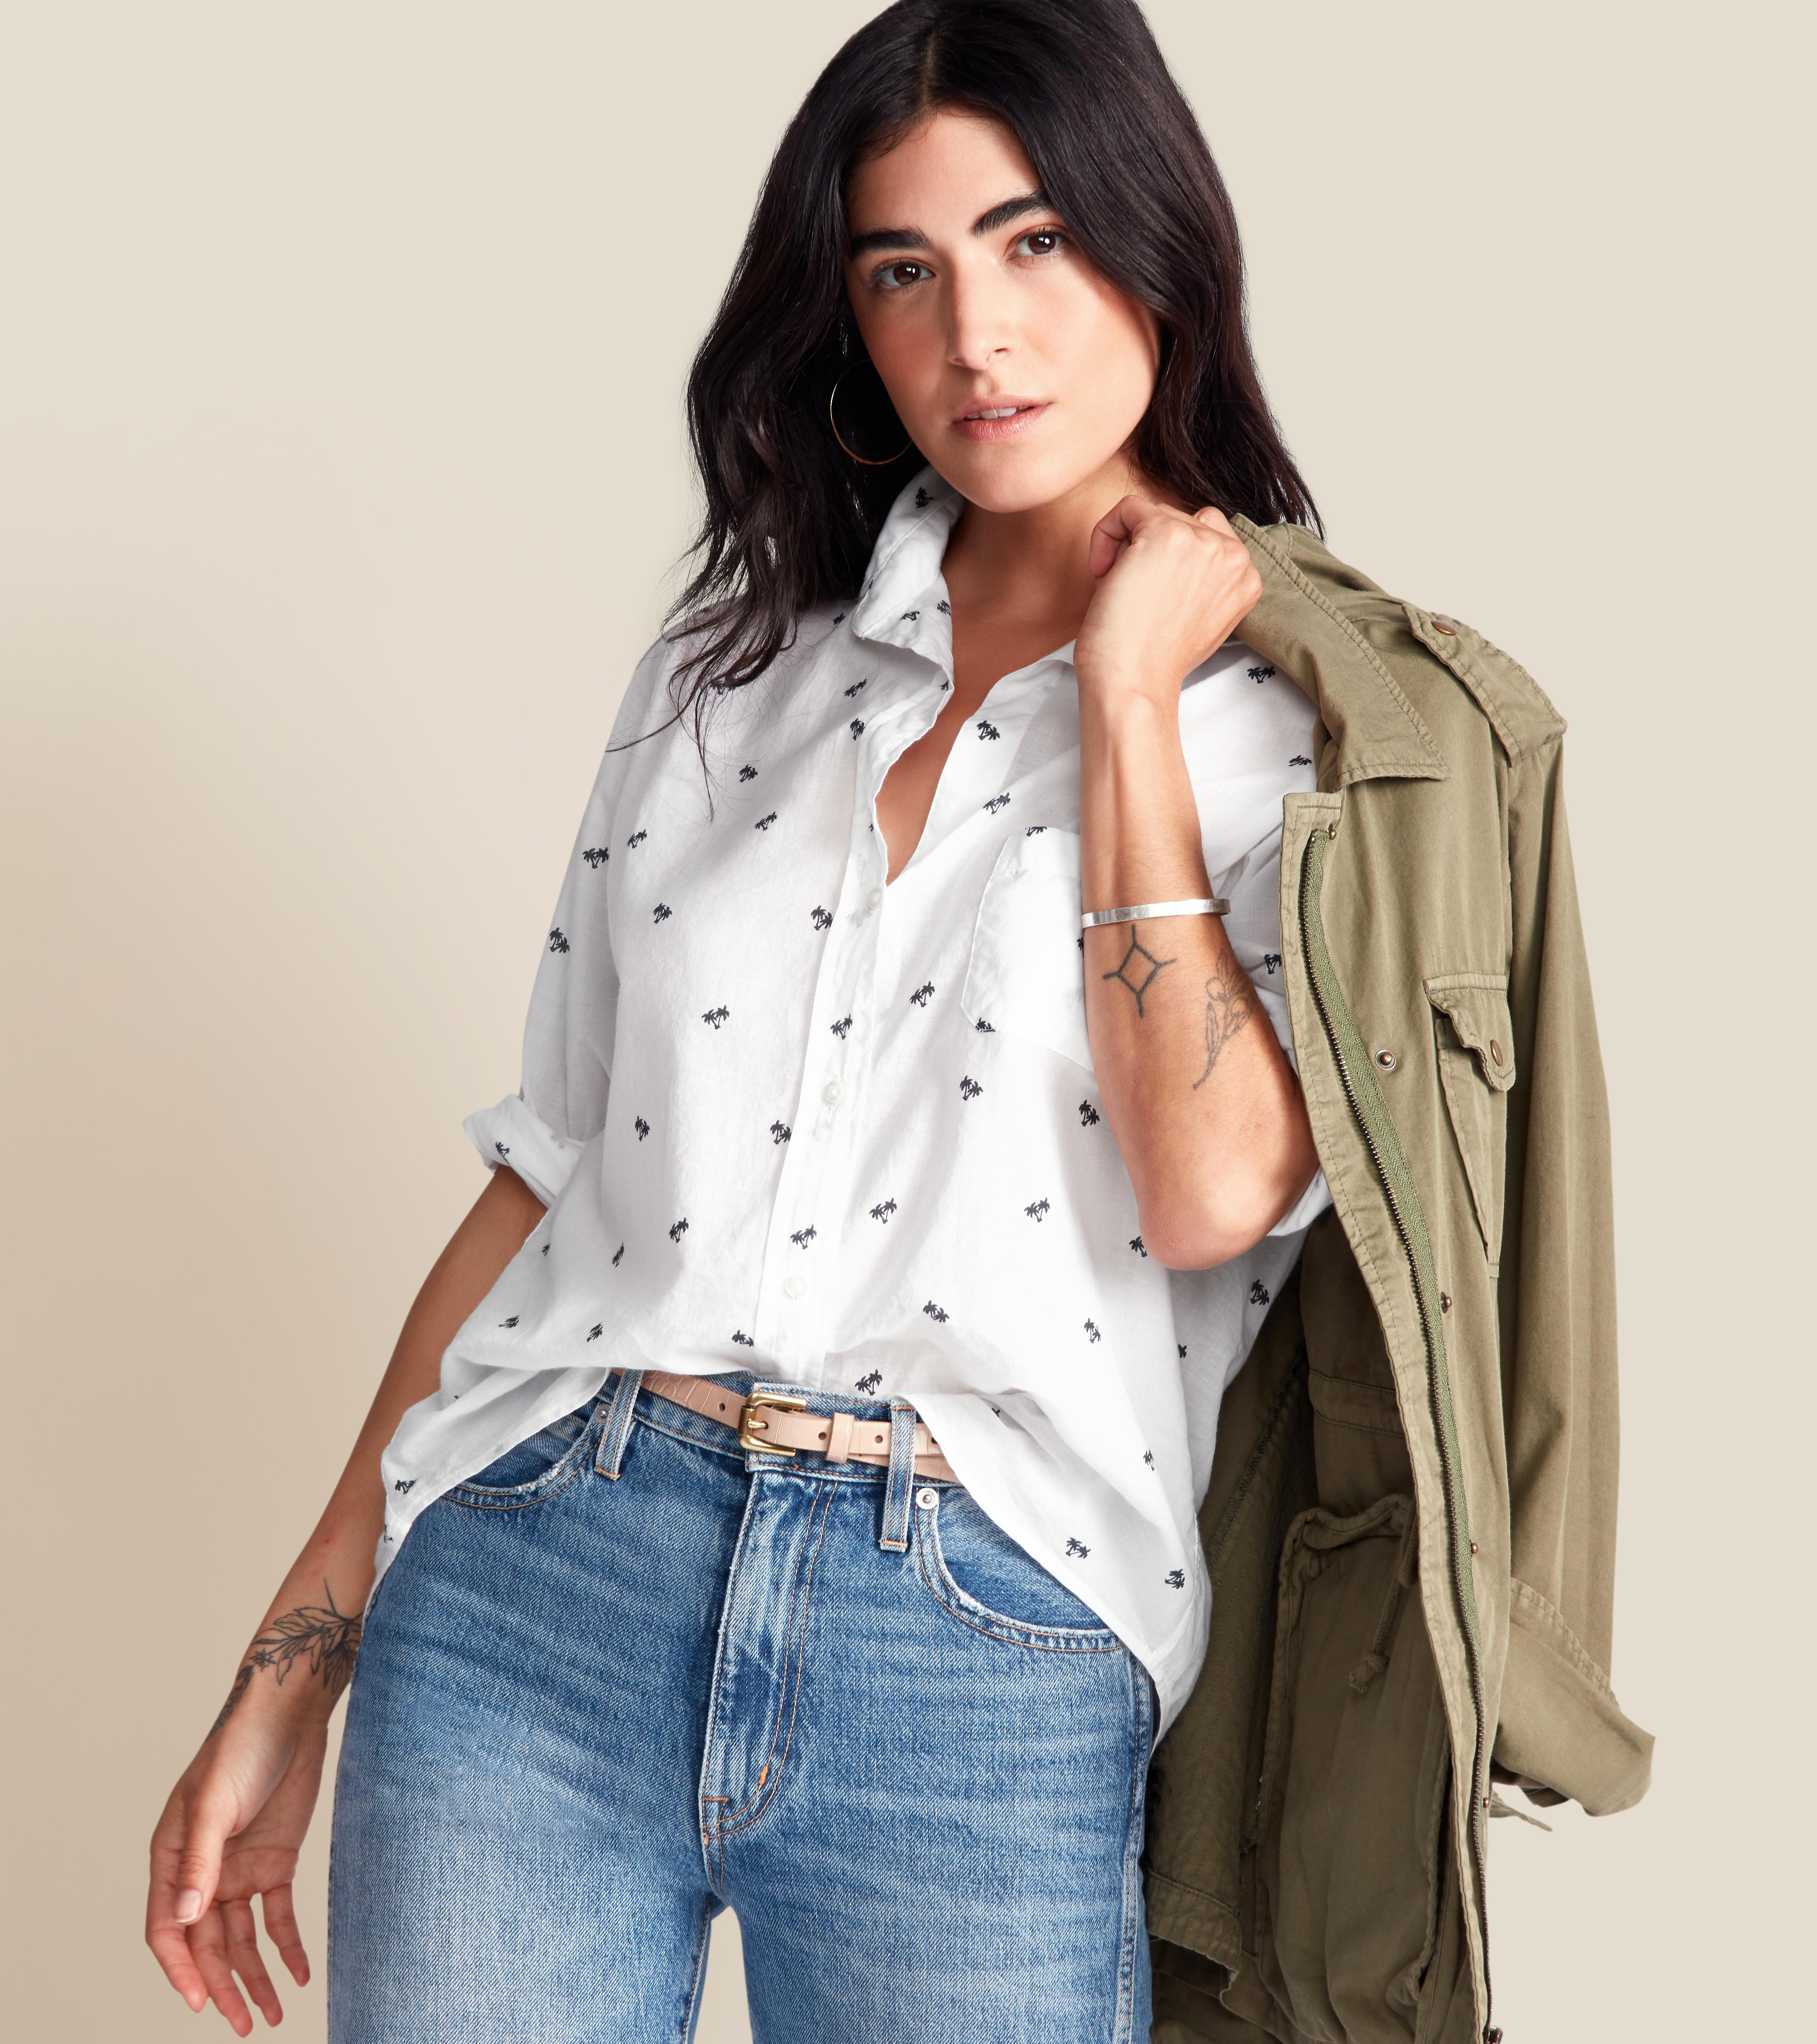 The Hero Button-Up Shirt White with Navy Palm, Tissue Cotton